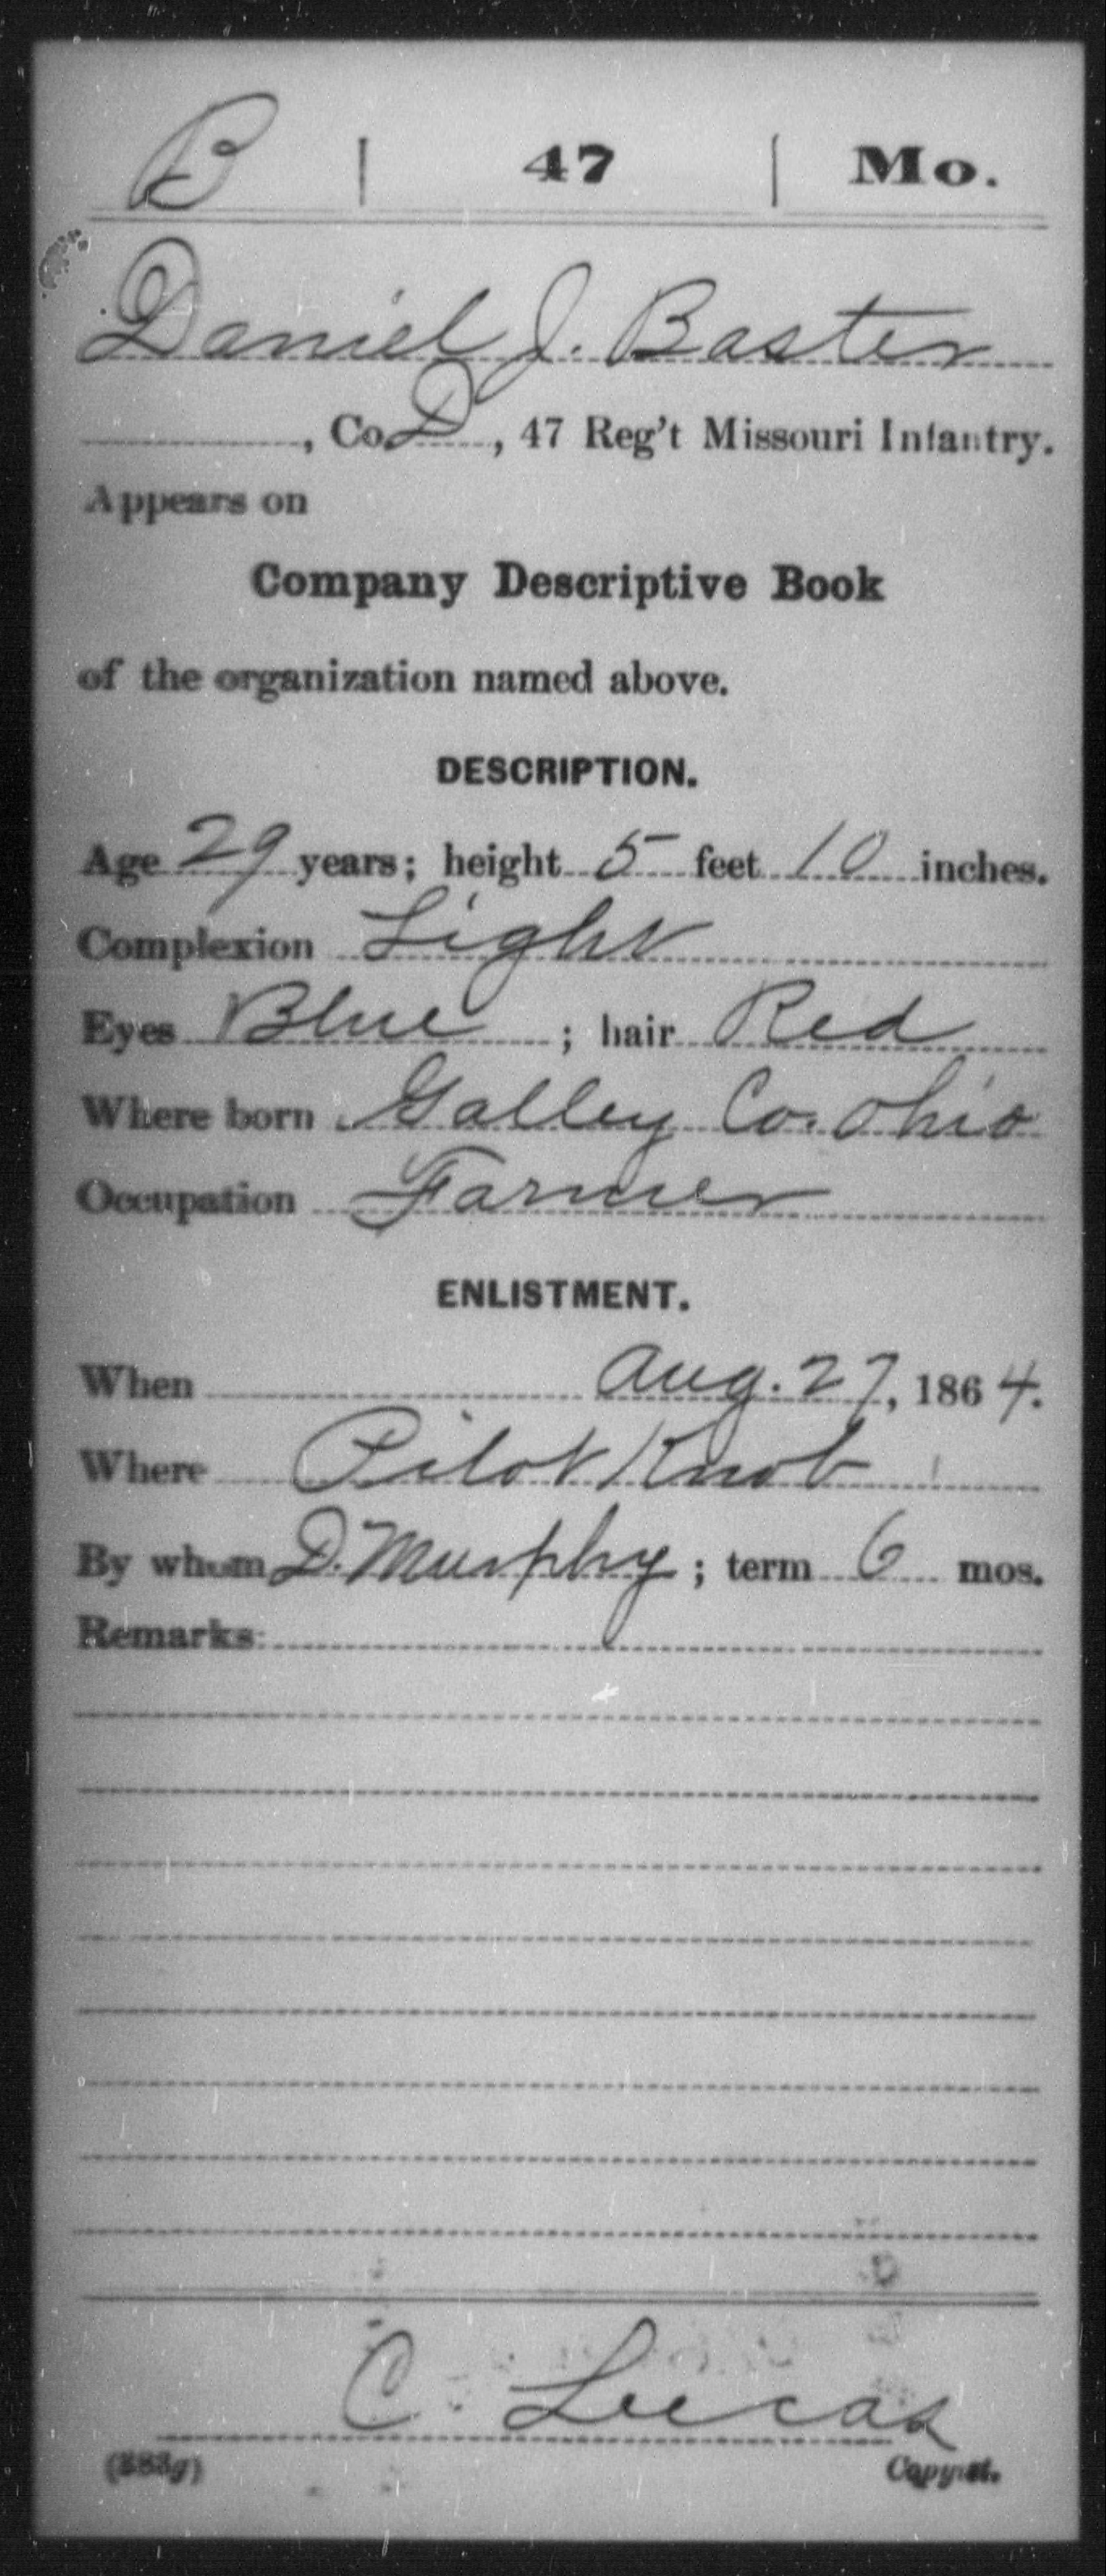 [Missouri] Baster, Daniel J - Age 29, Year: 1864 - Forty-sixth Infantry, M-Y AND Forty-seventh Infantry